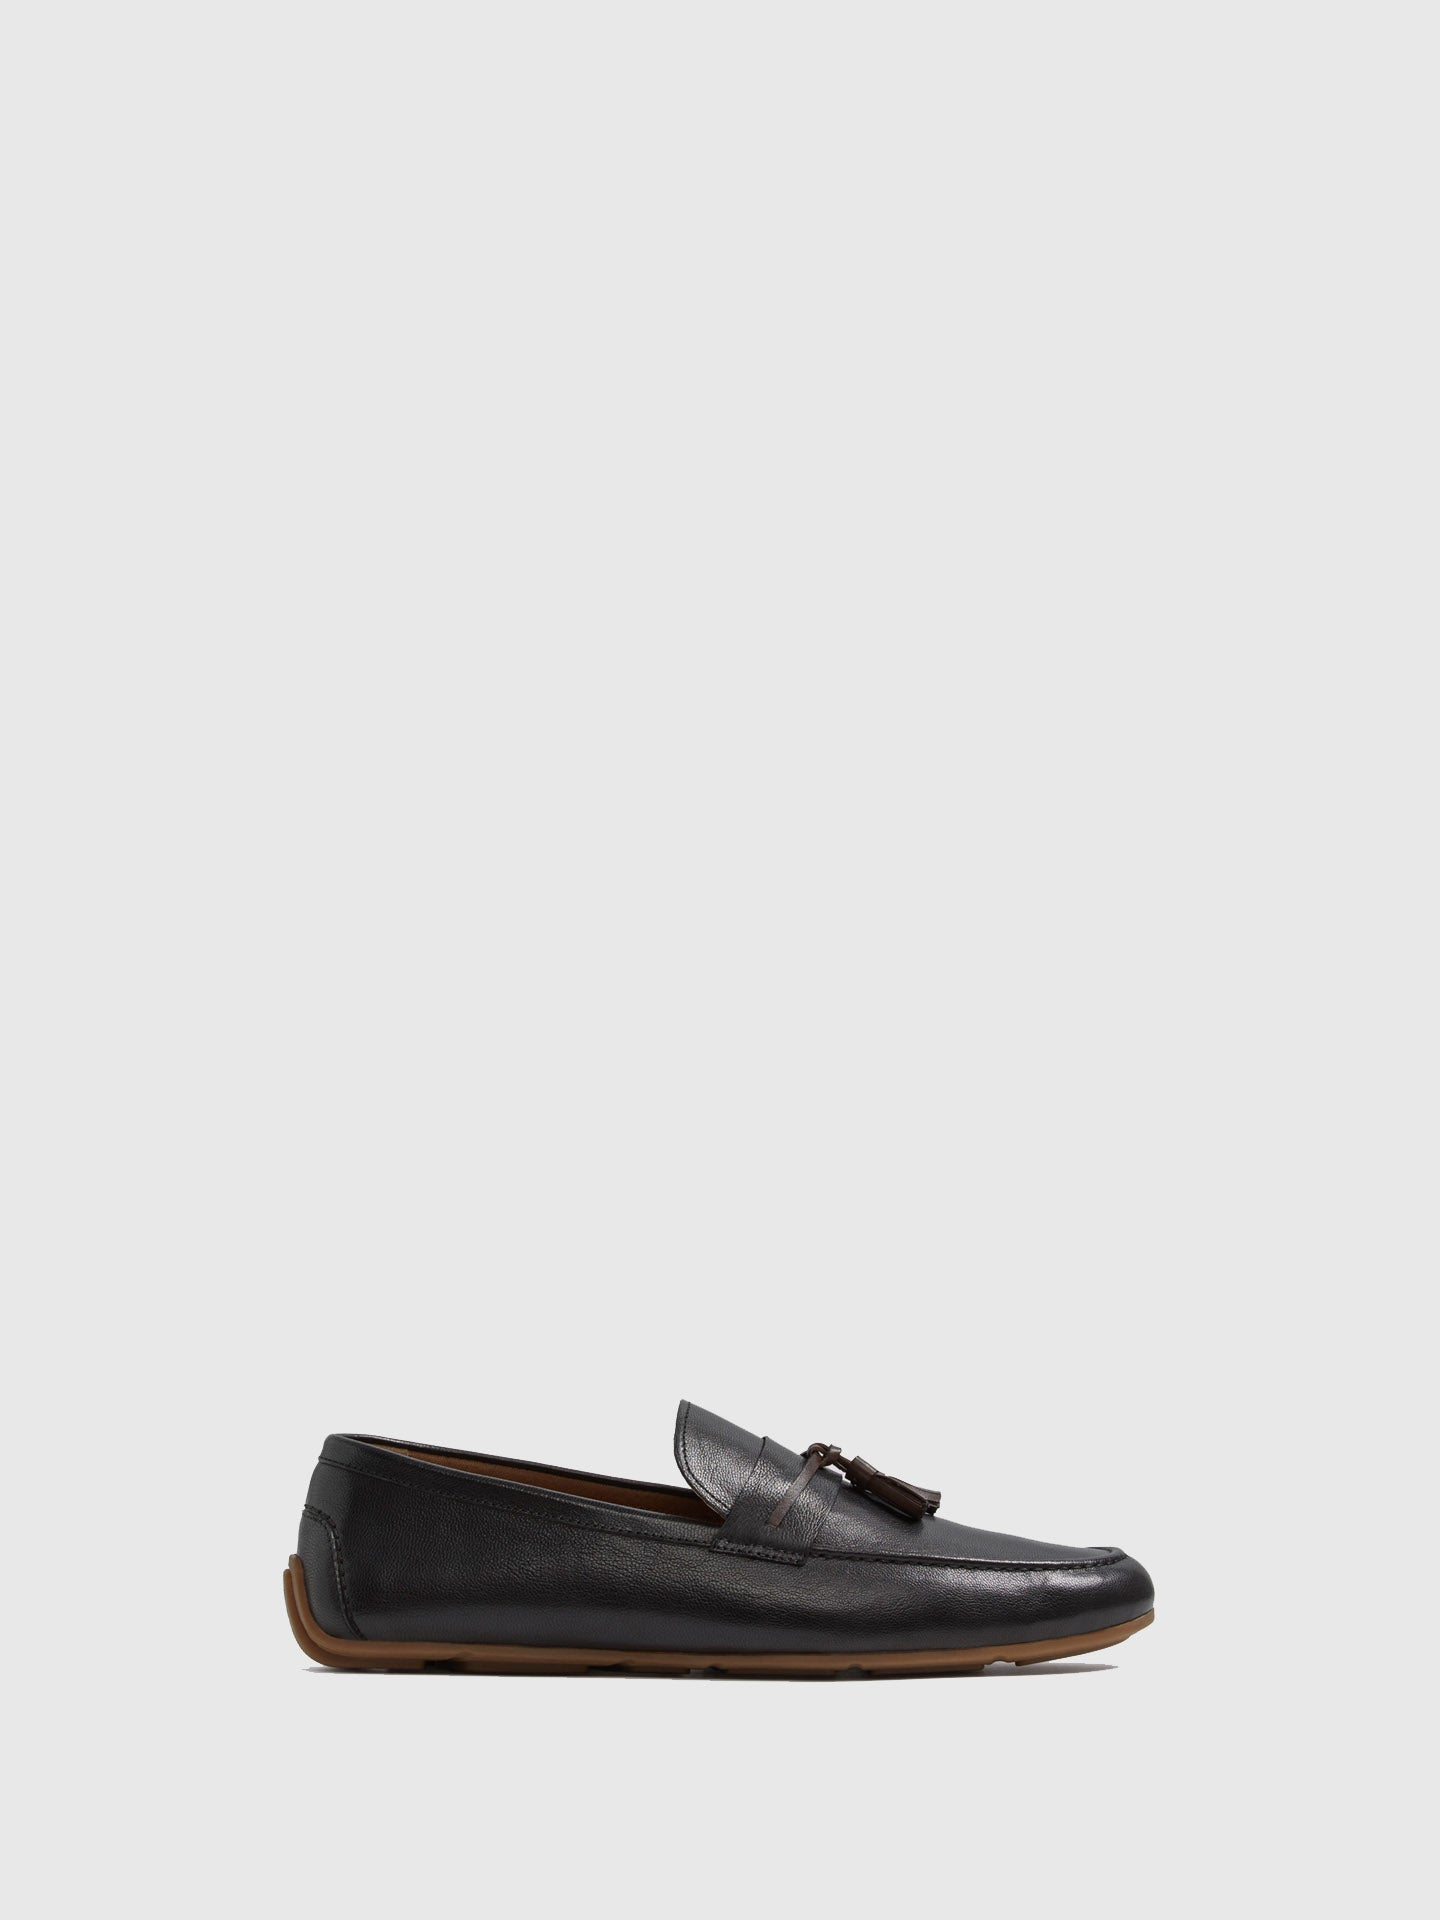 Aldo Black Loafers Shoes